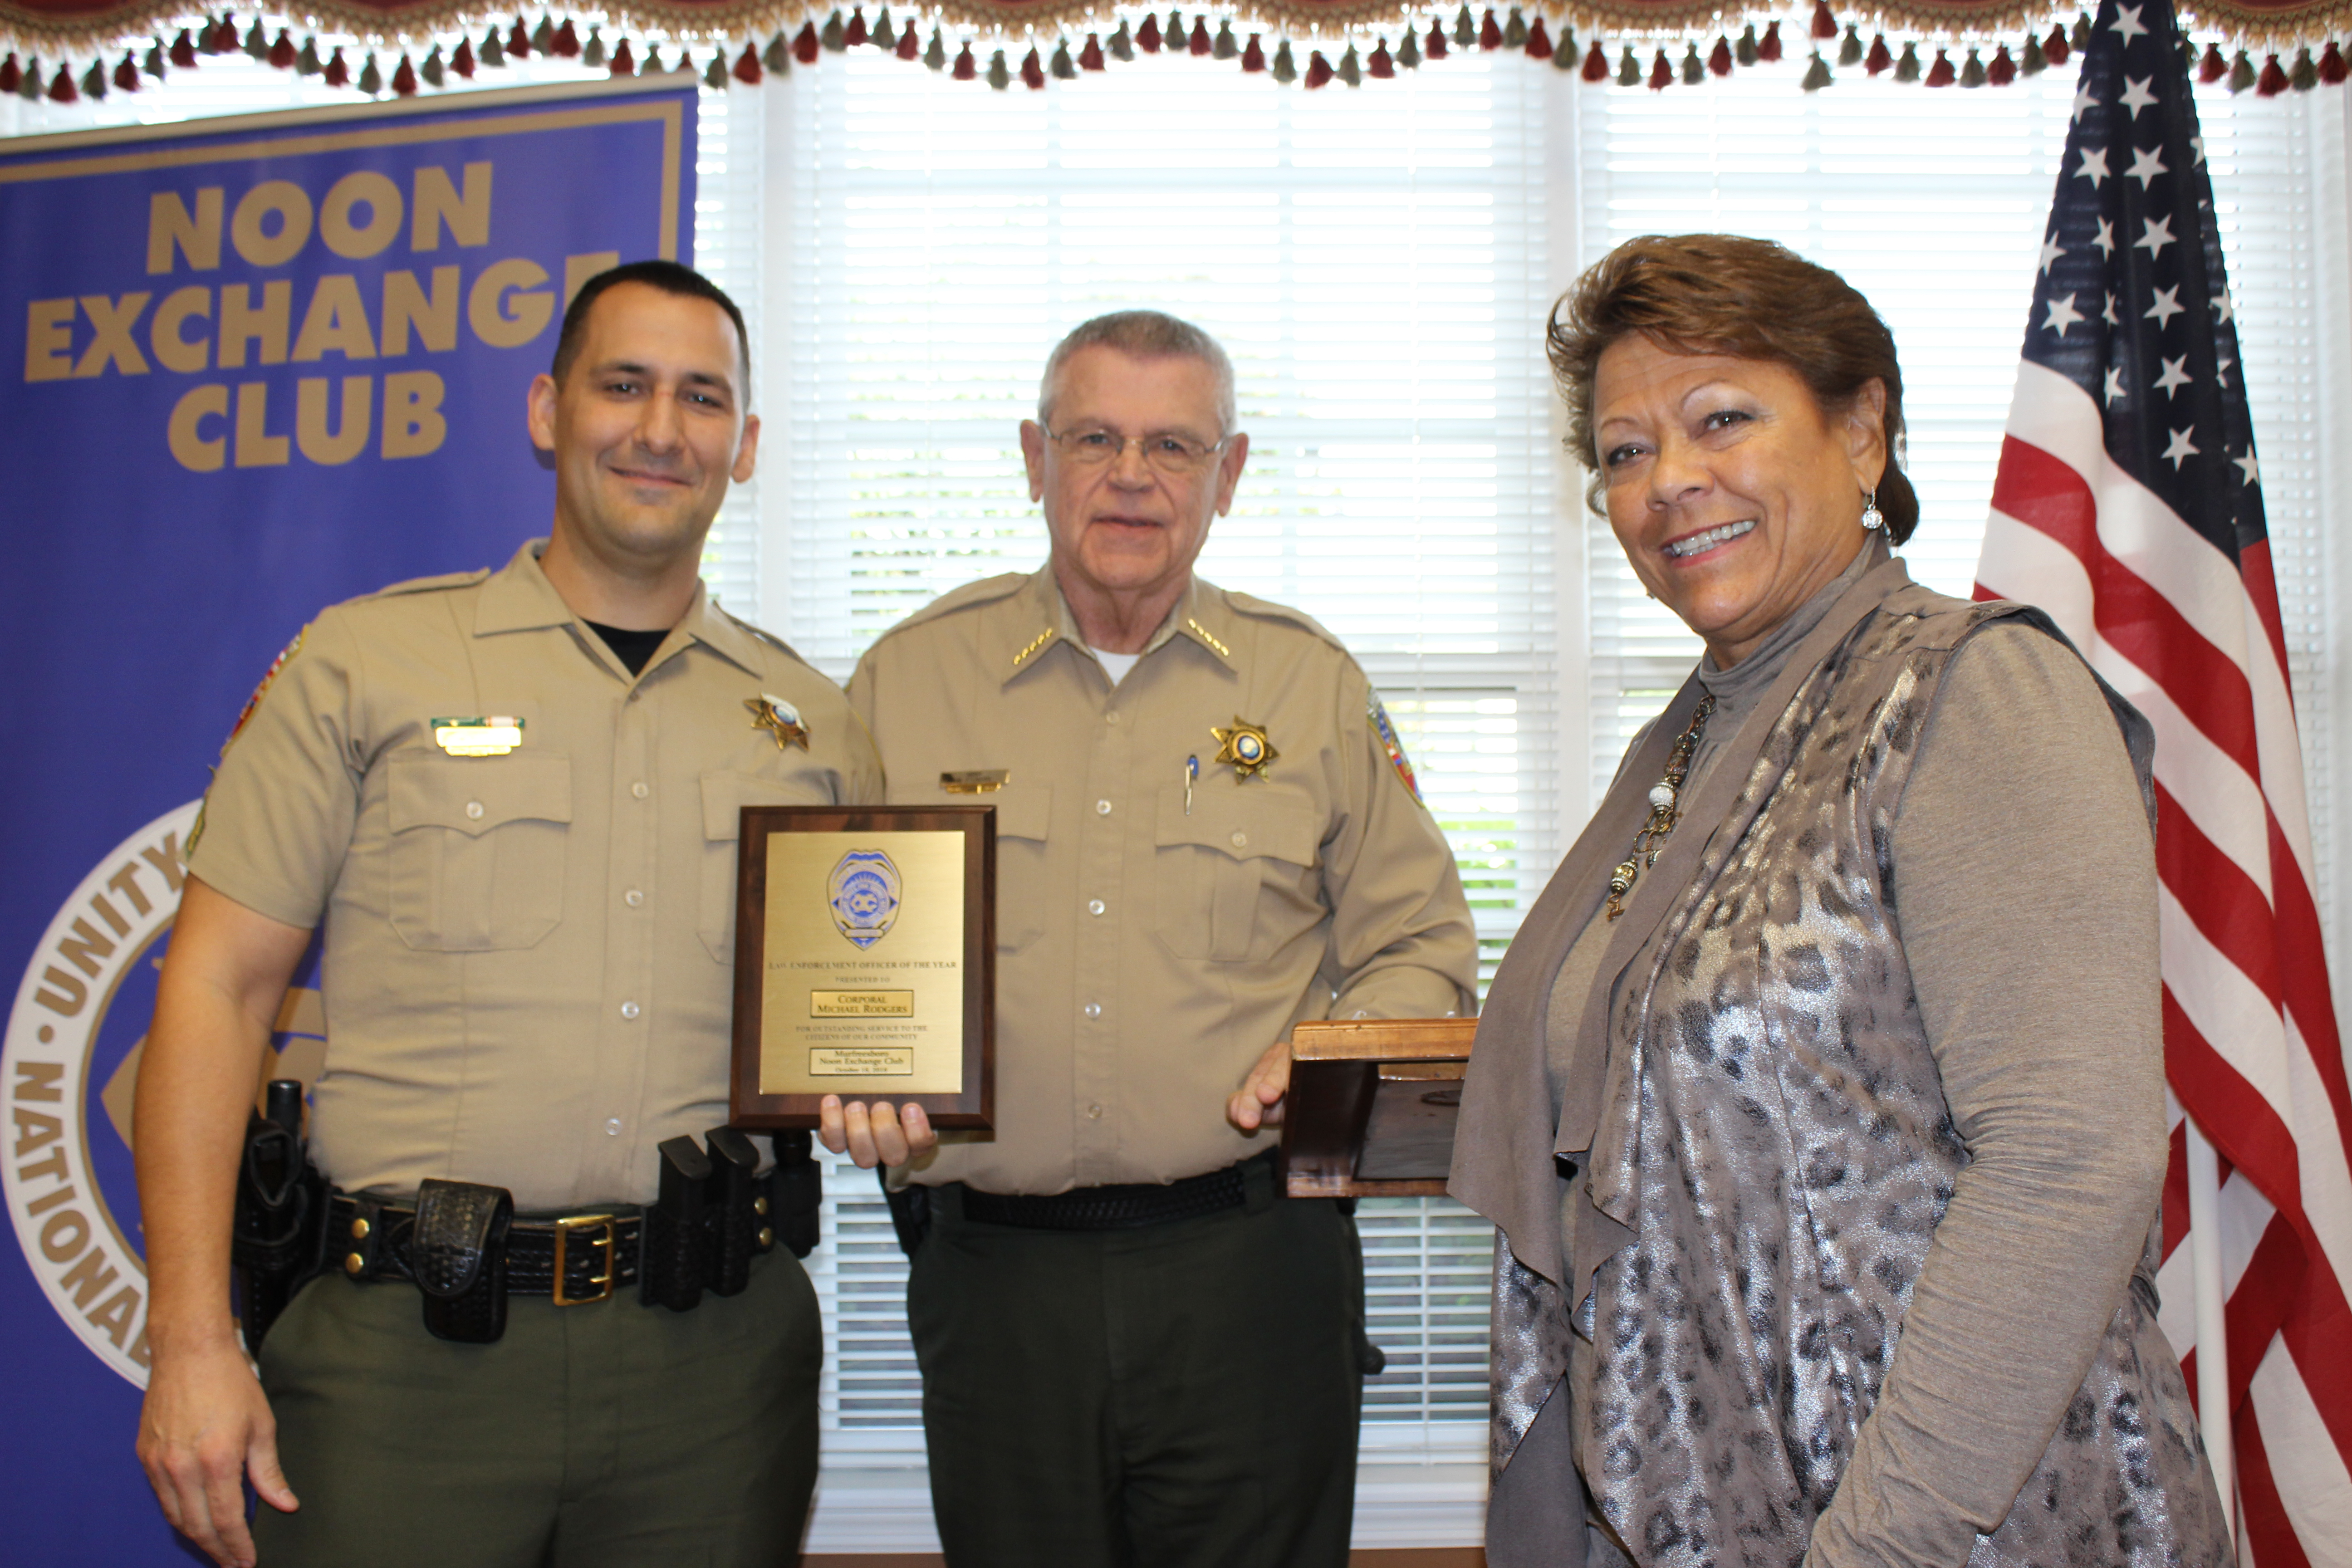 Murfreesboro Noon Exchange Club's Officer of the Year